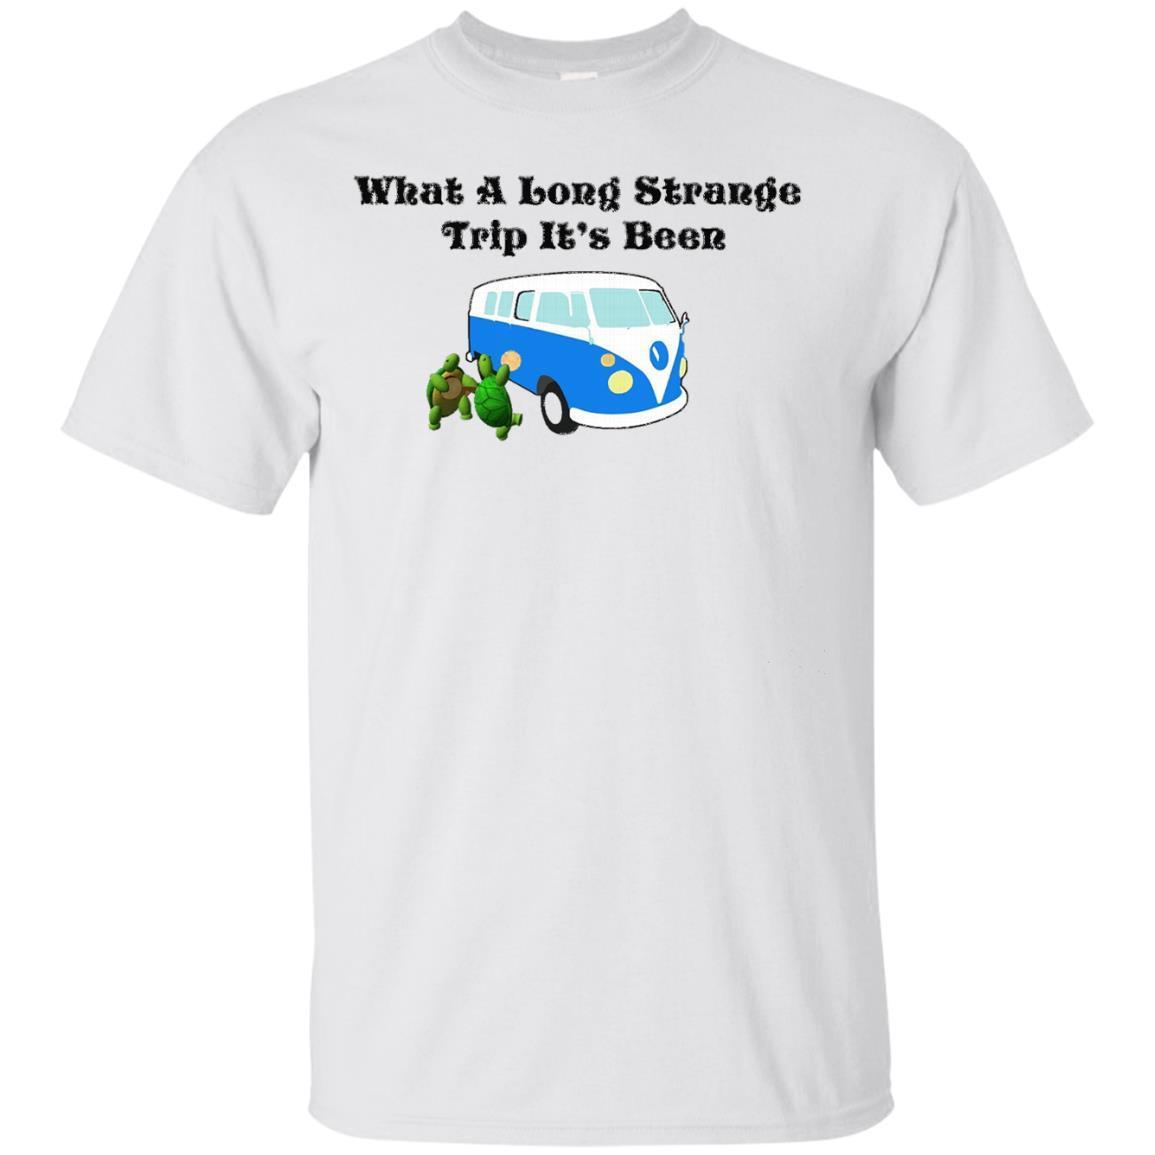 What a long strange trip it's been tee shirt – T-Shirt